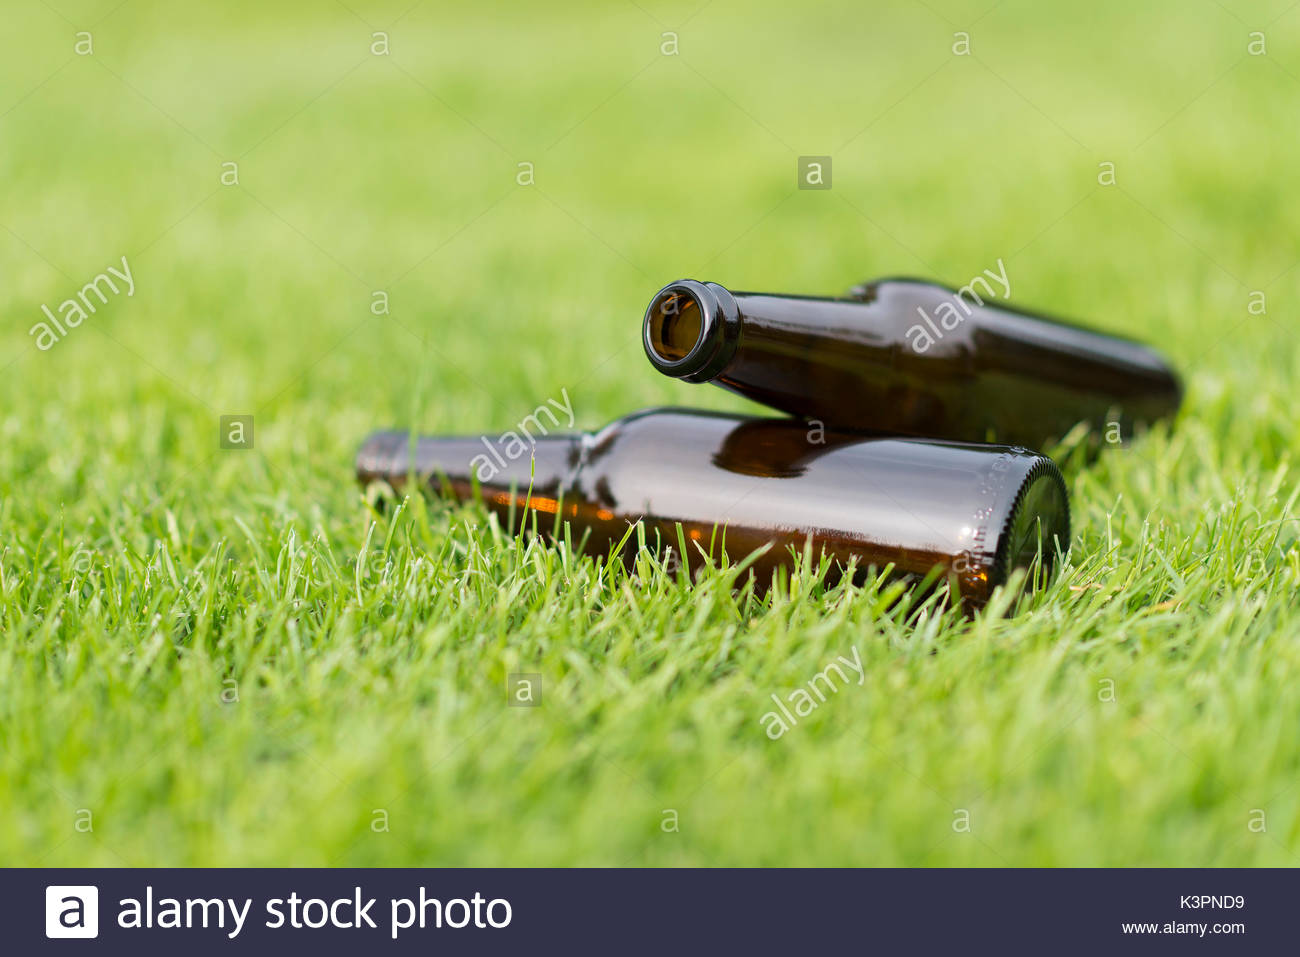 Empty beer bottles in a grass field with a vague background Stock 1300x957